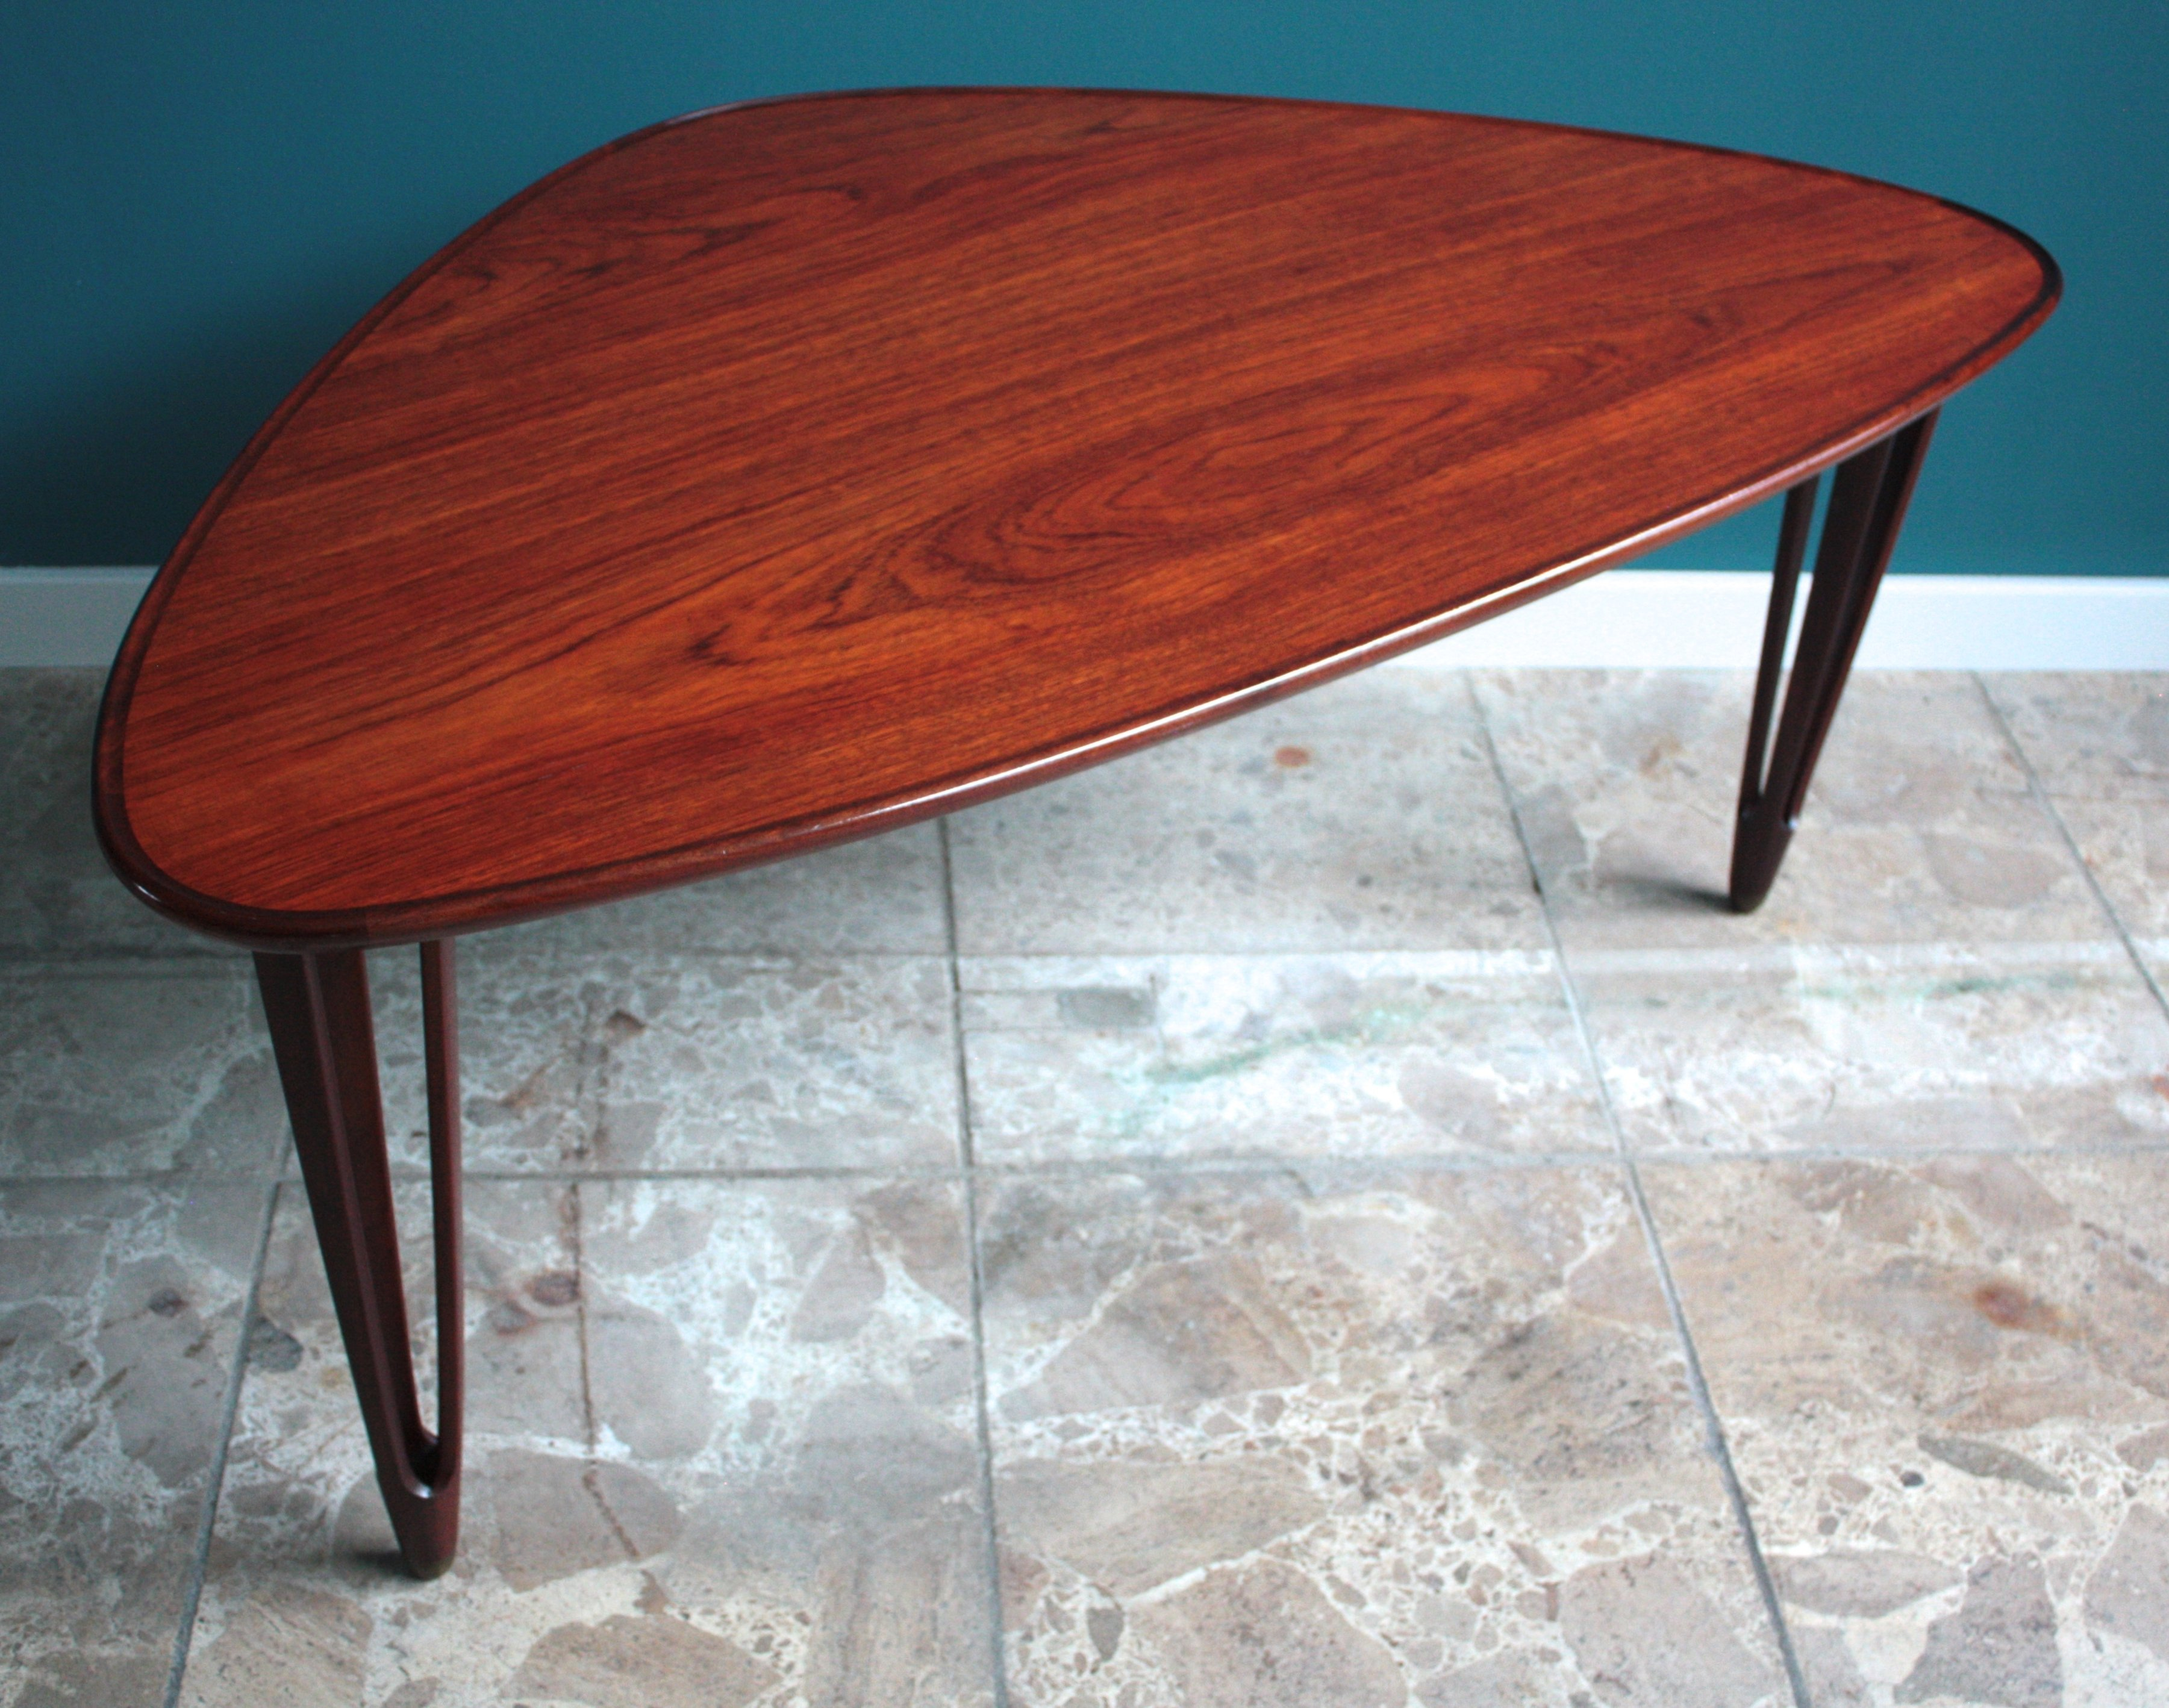 B c m bler coffee table 1950s 51411 for Coffee tables b m